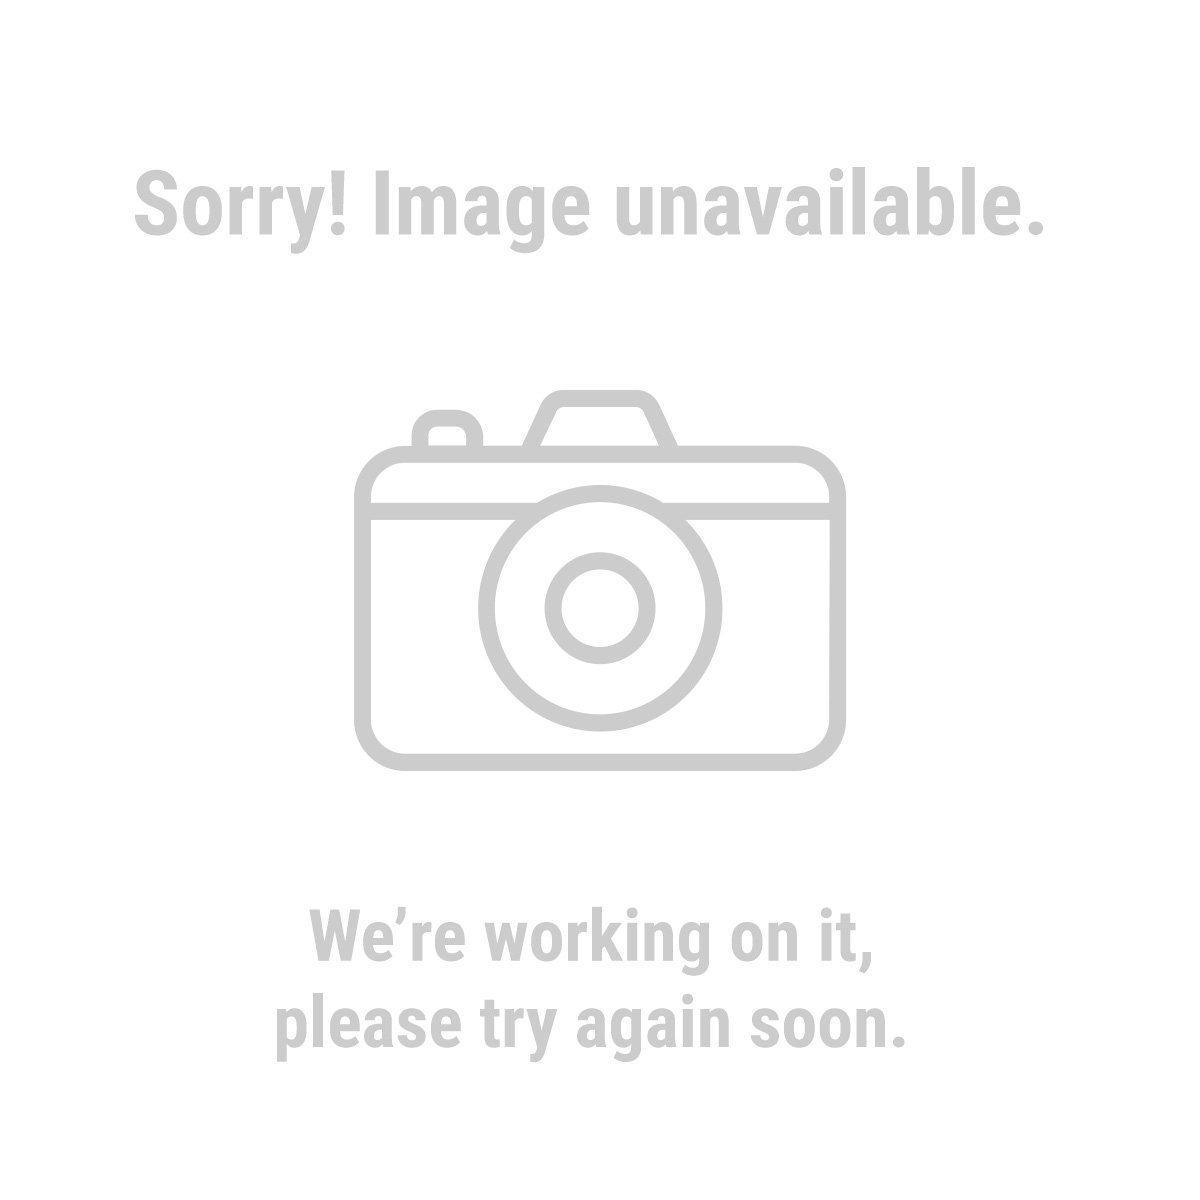 Chicago Electric 47960 Two-to-Three Prong Grounding Adapter